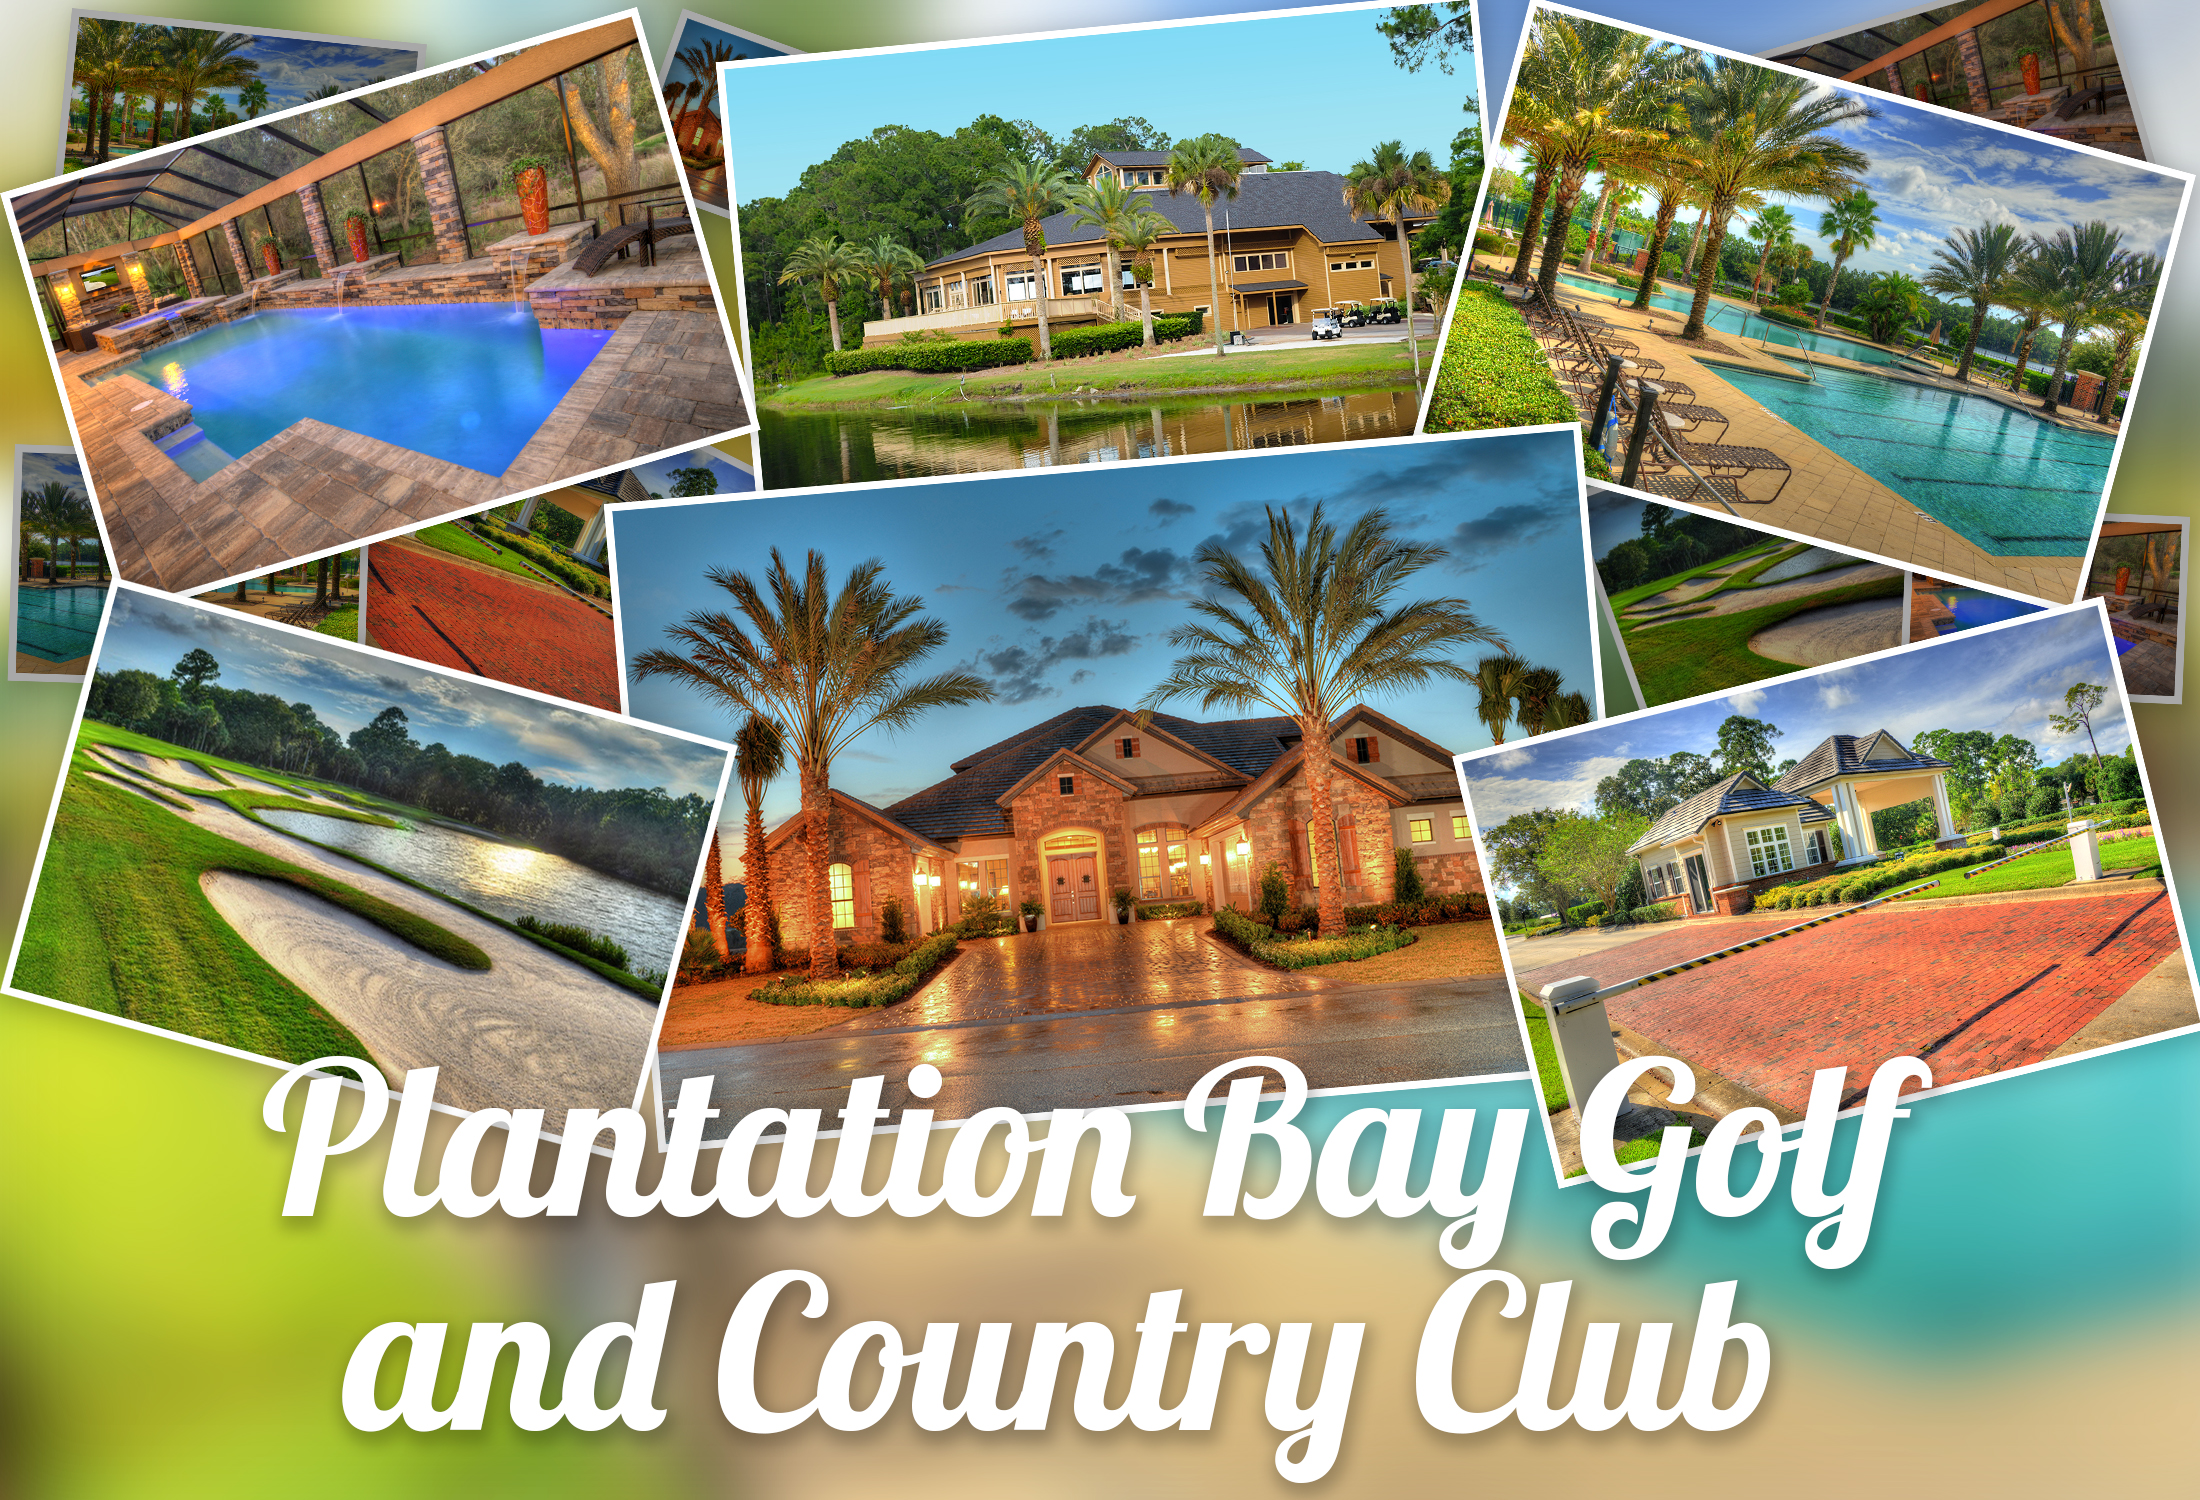 Plantation Bay Townhomes In Ormond Beach FL For Sale on